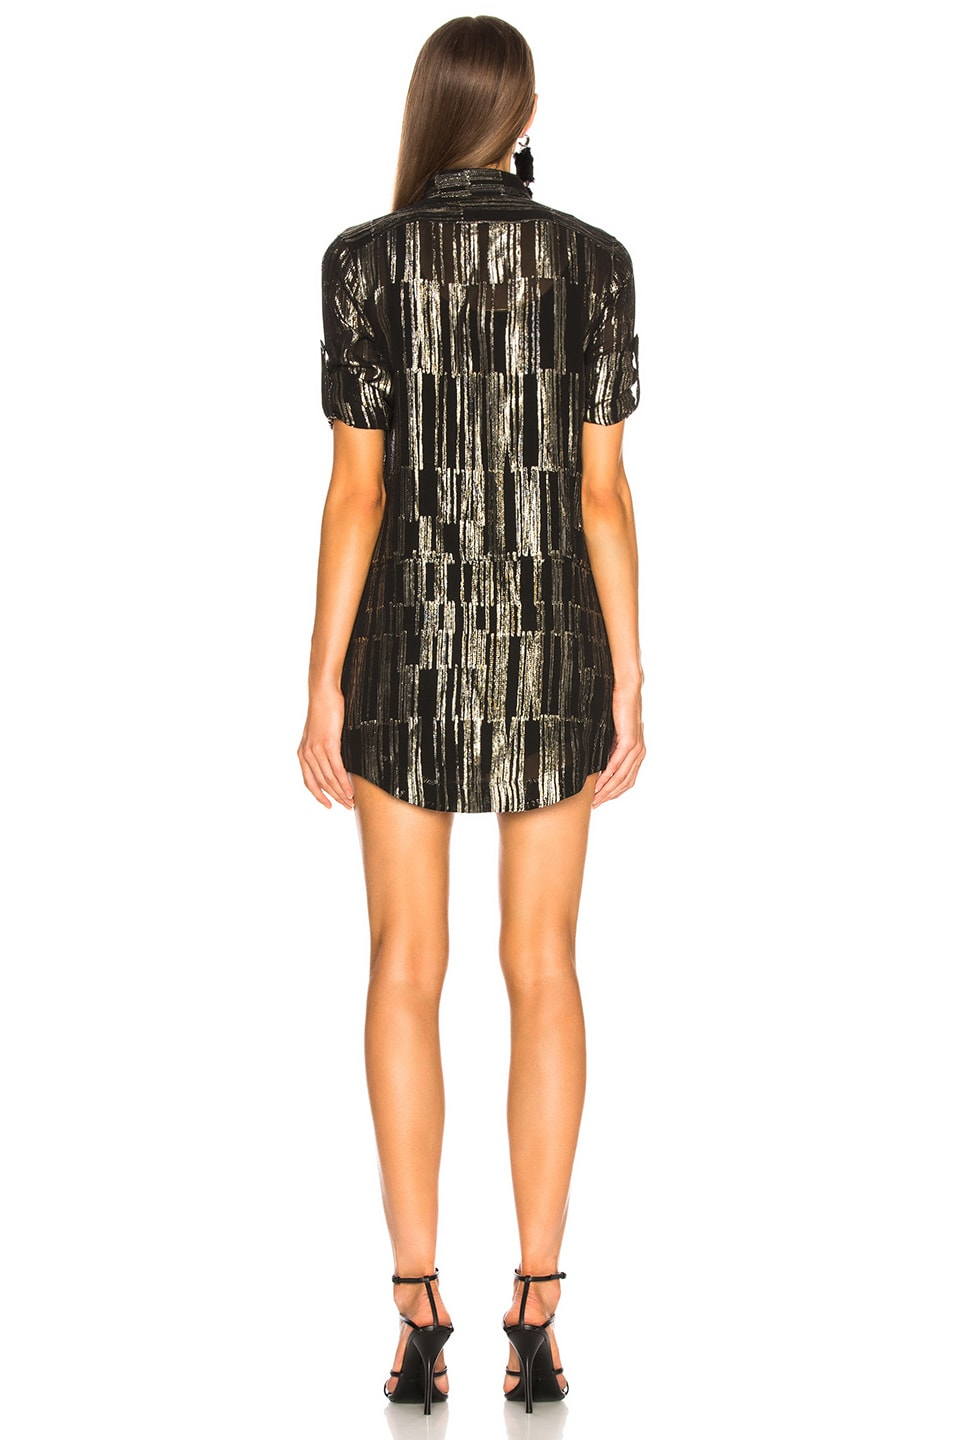 Image 4 of Saint Laurent Metallic Stripe Shirt Dress in Black, Gold & Silver